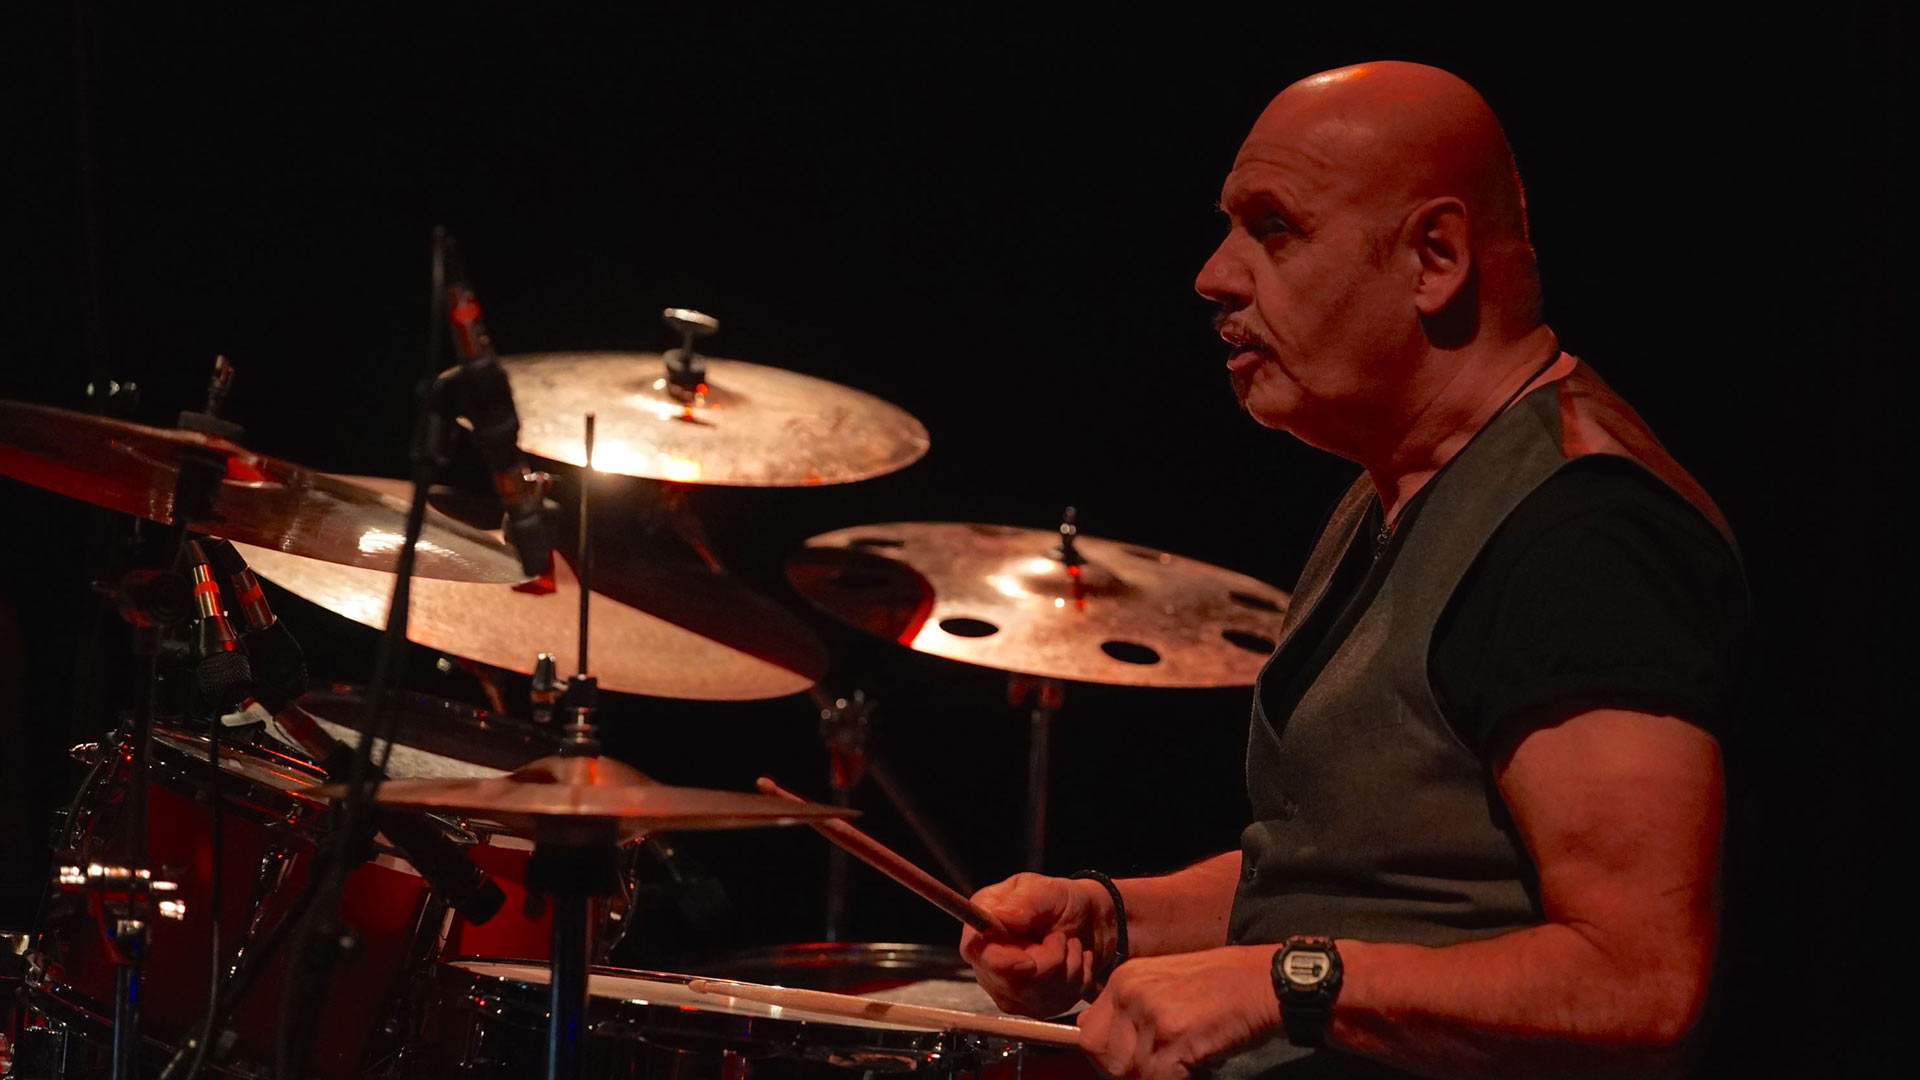 Roy Adams sits behind his red Yamaha drum kit and symbols